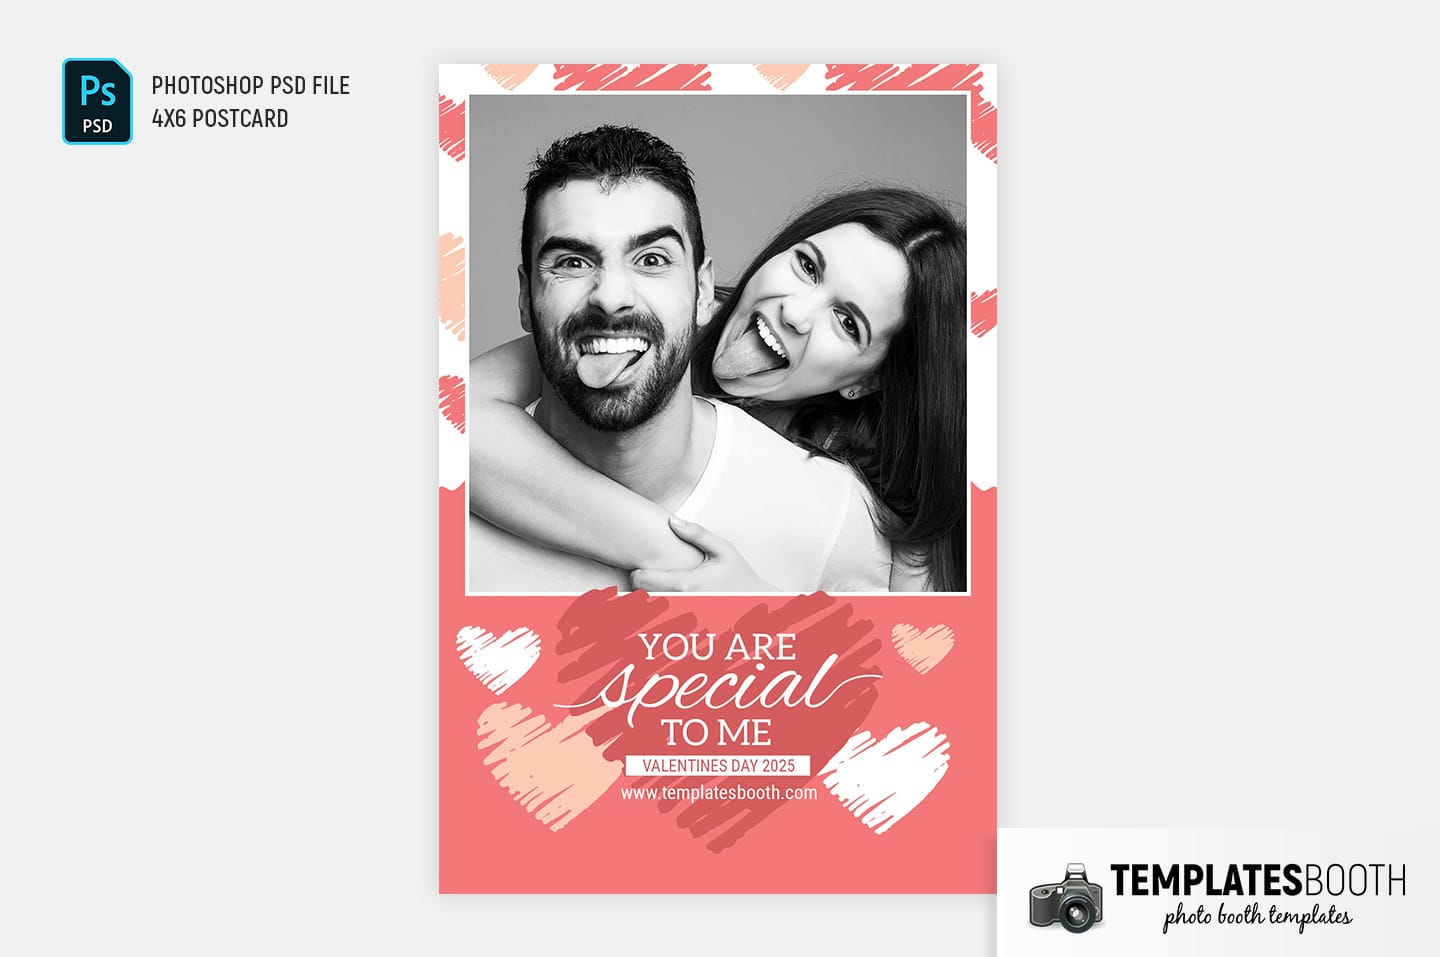 Valentine's Day Photo Booth Template (centre postcard)